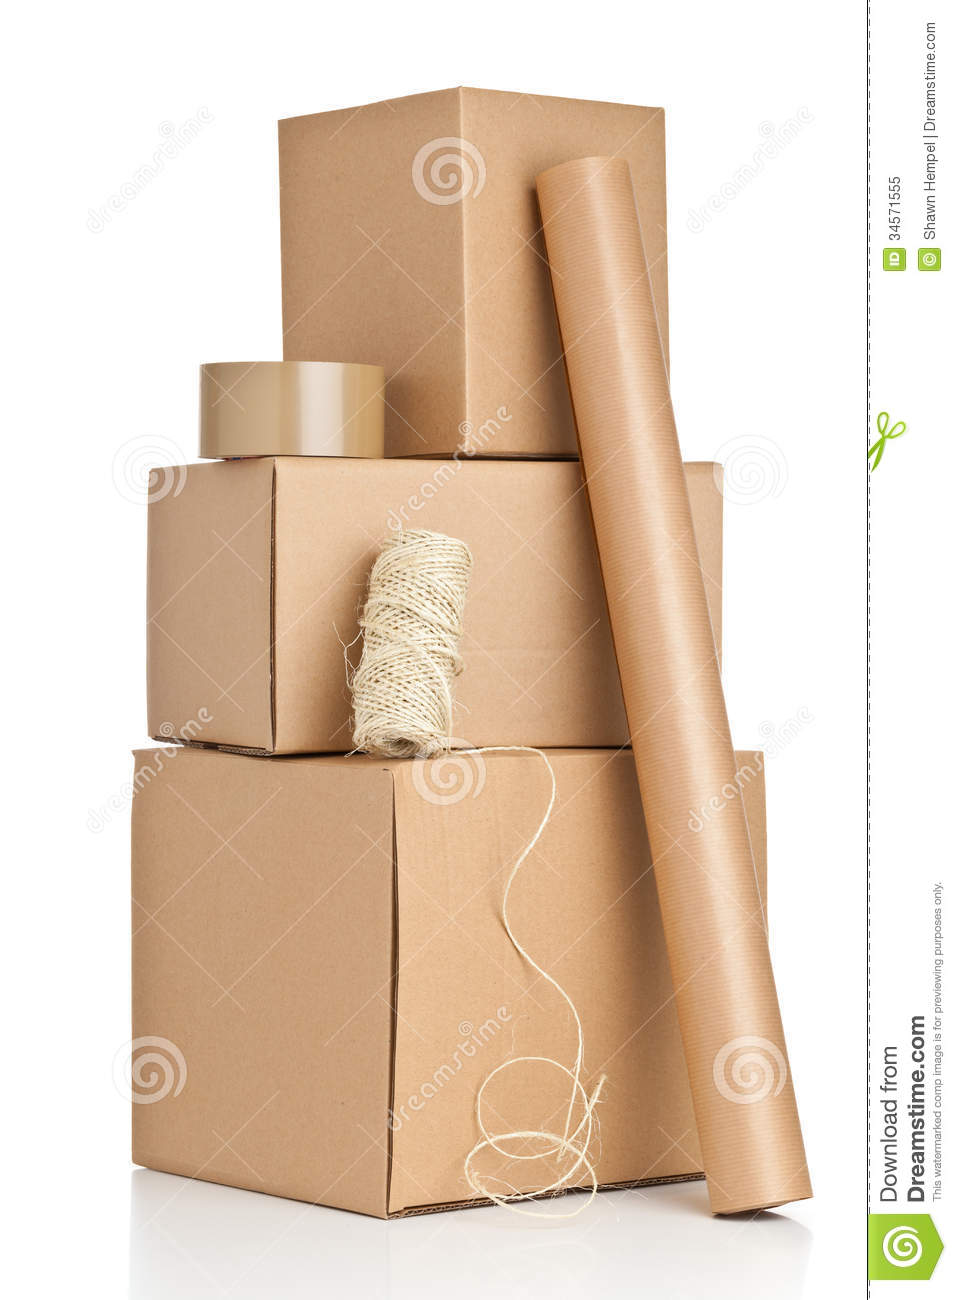 Packaging Materials Royalty Free Stock Photo.